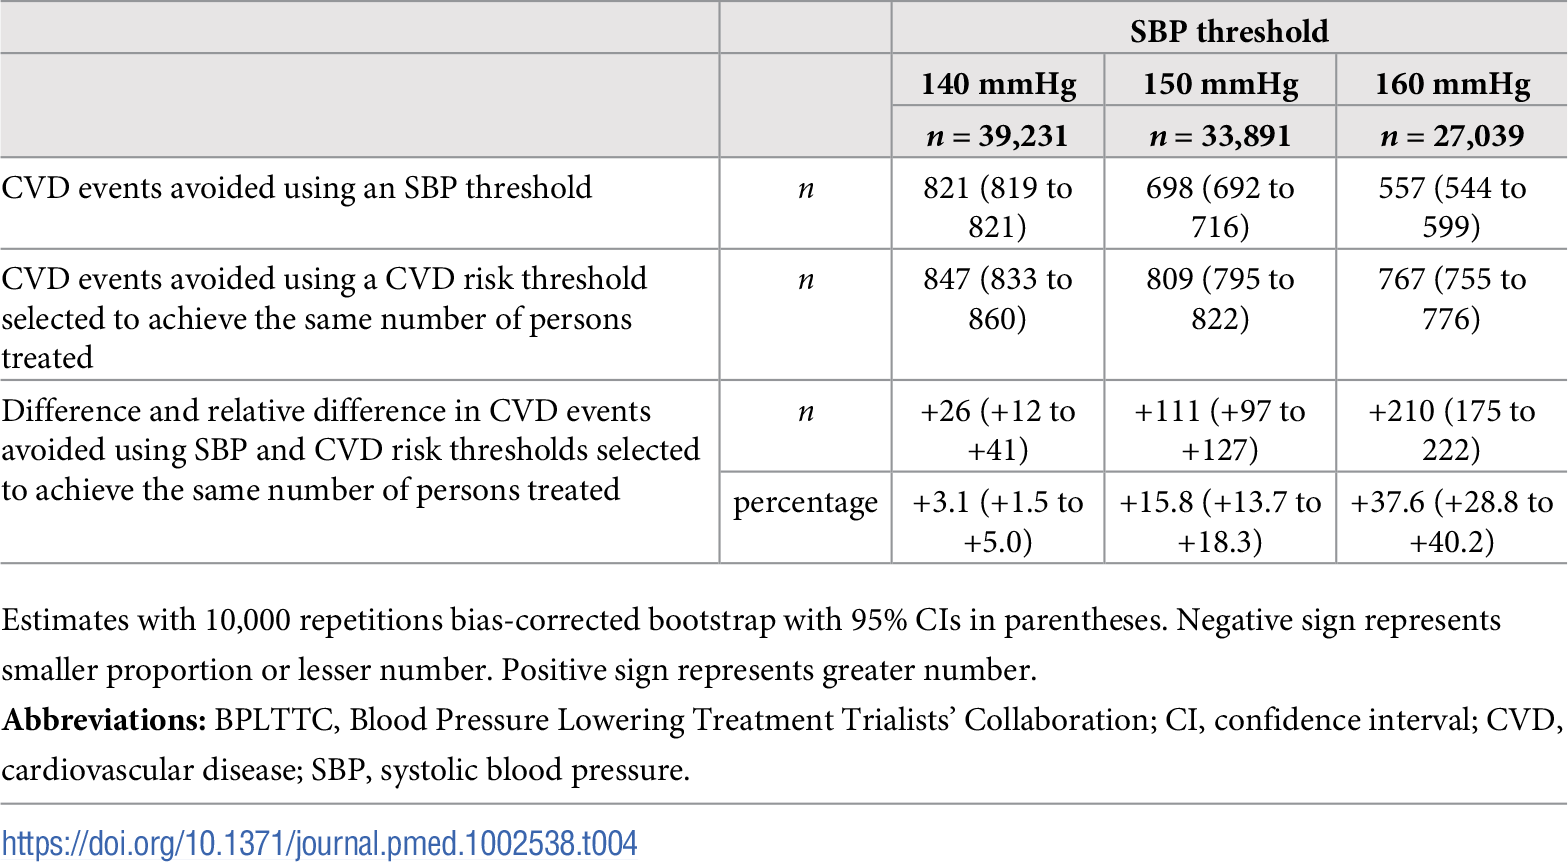 Cardiovascular events avoided over 5 y for the same number of persons treated using selected SBP thresholds and corresponding CVD risk thresholds.